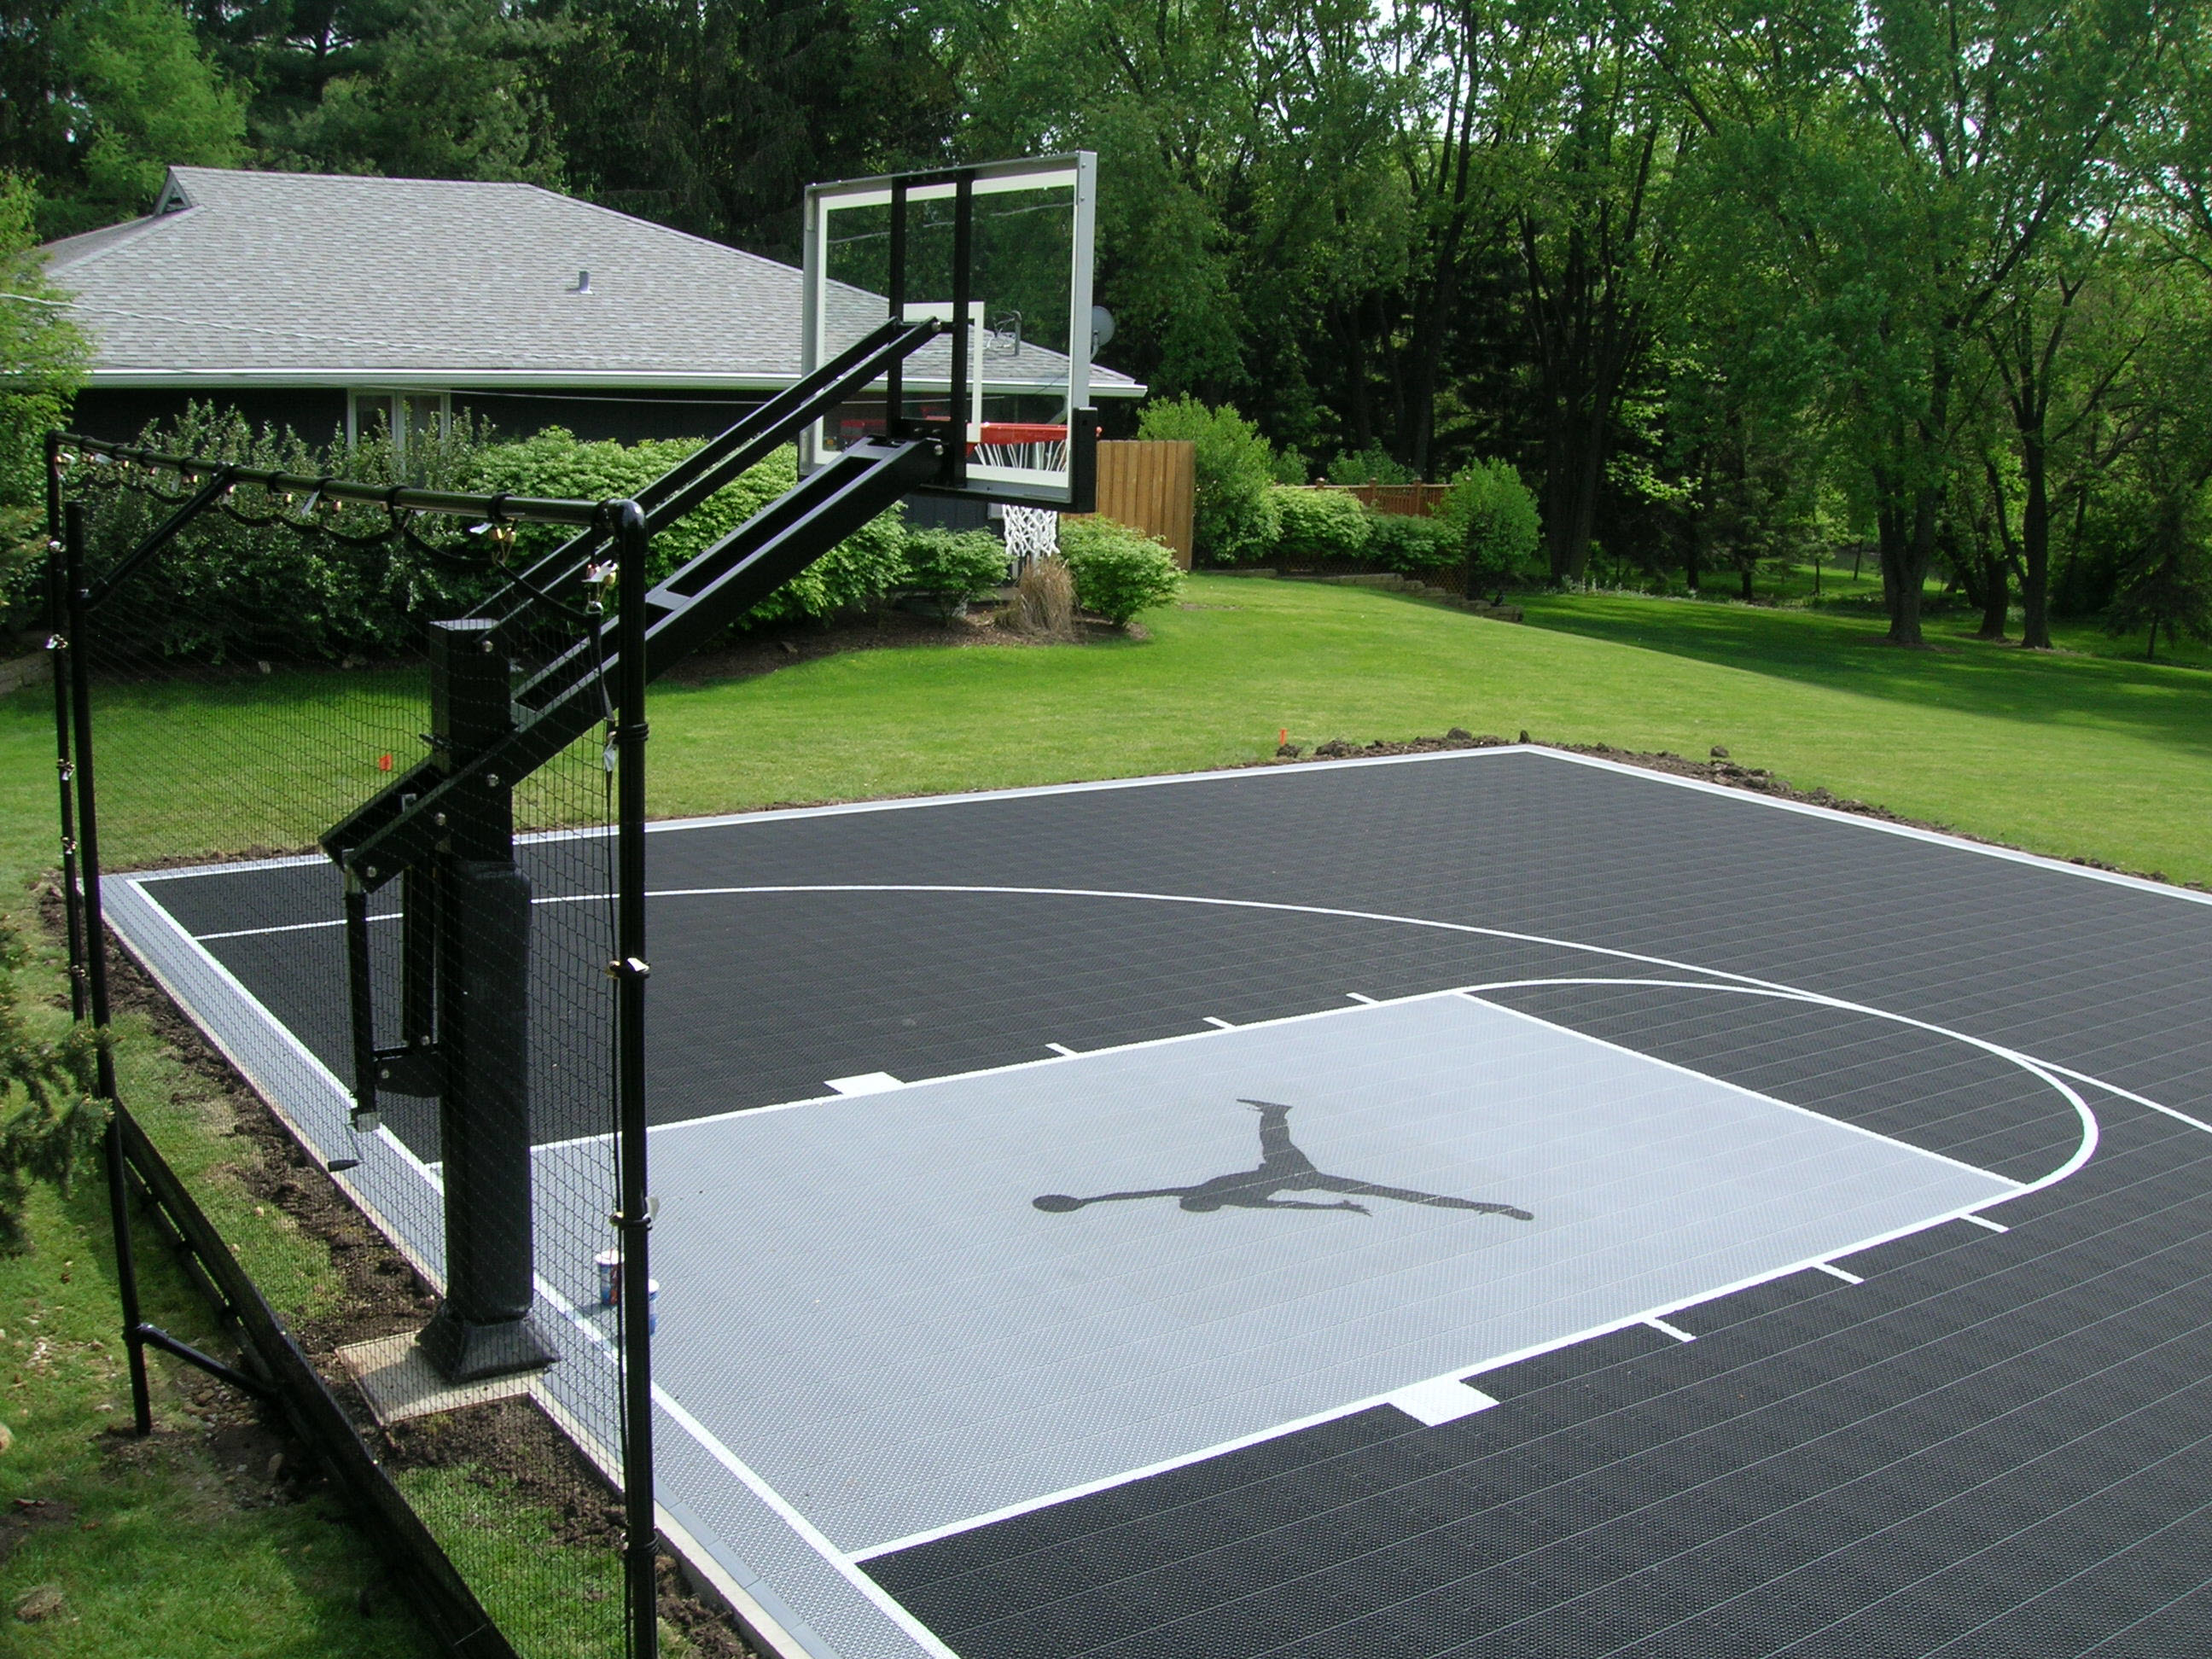 Basketball court quotes quotesgram for Custom basketball court cost